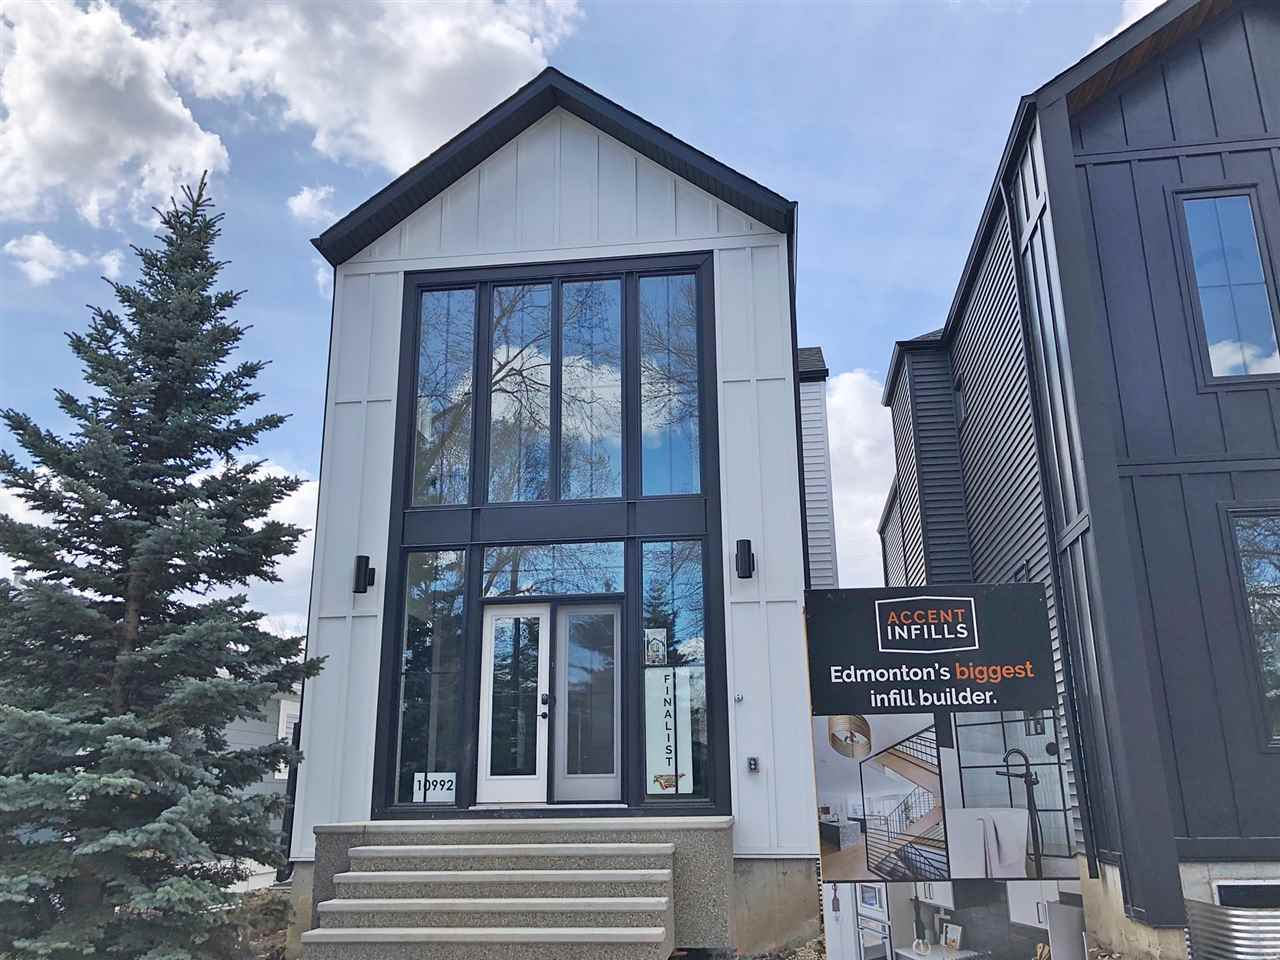 FEATURED LISTING: 10992 128 Street Edmonton